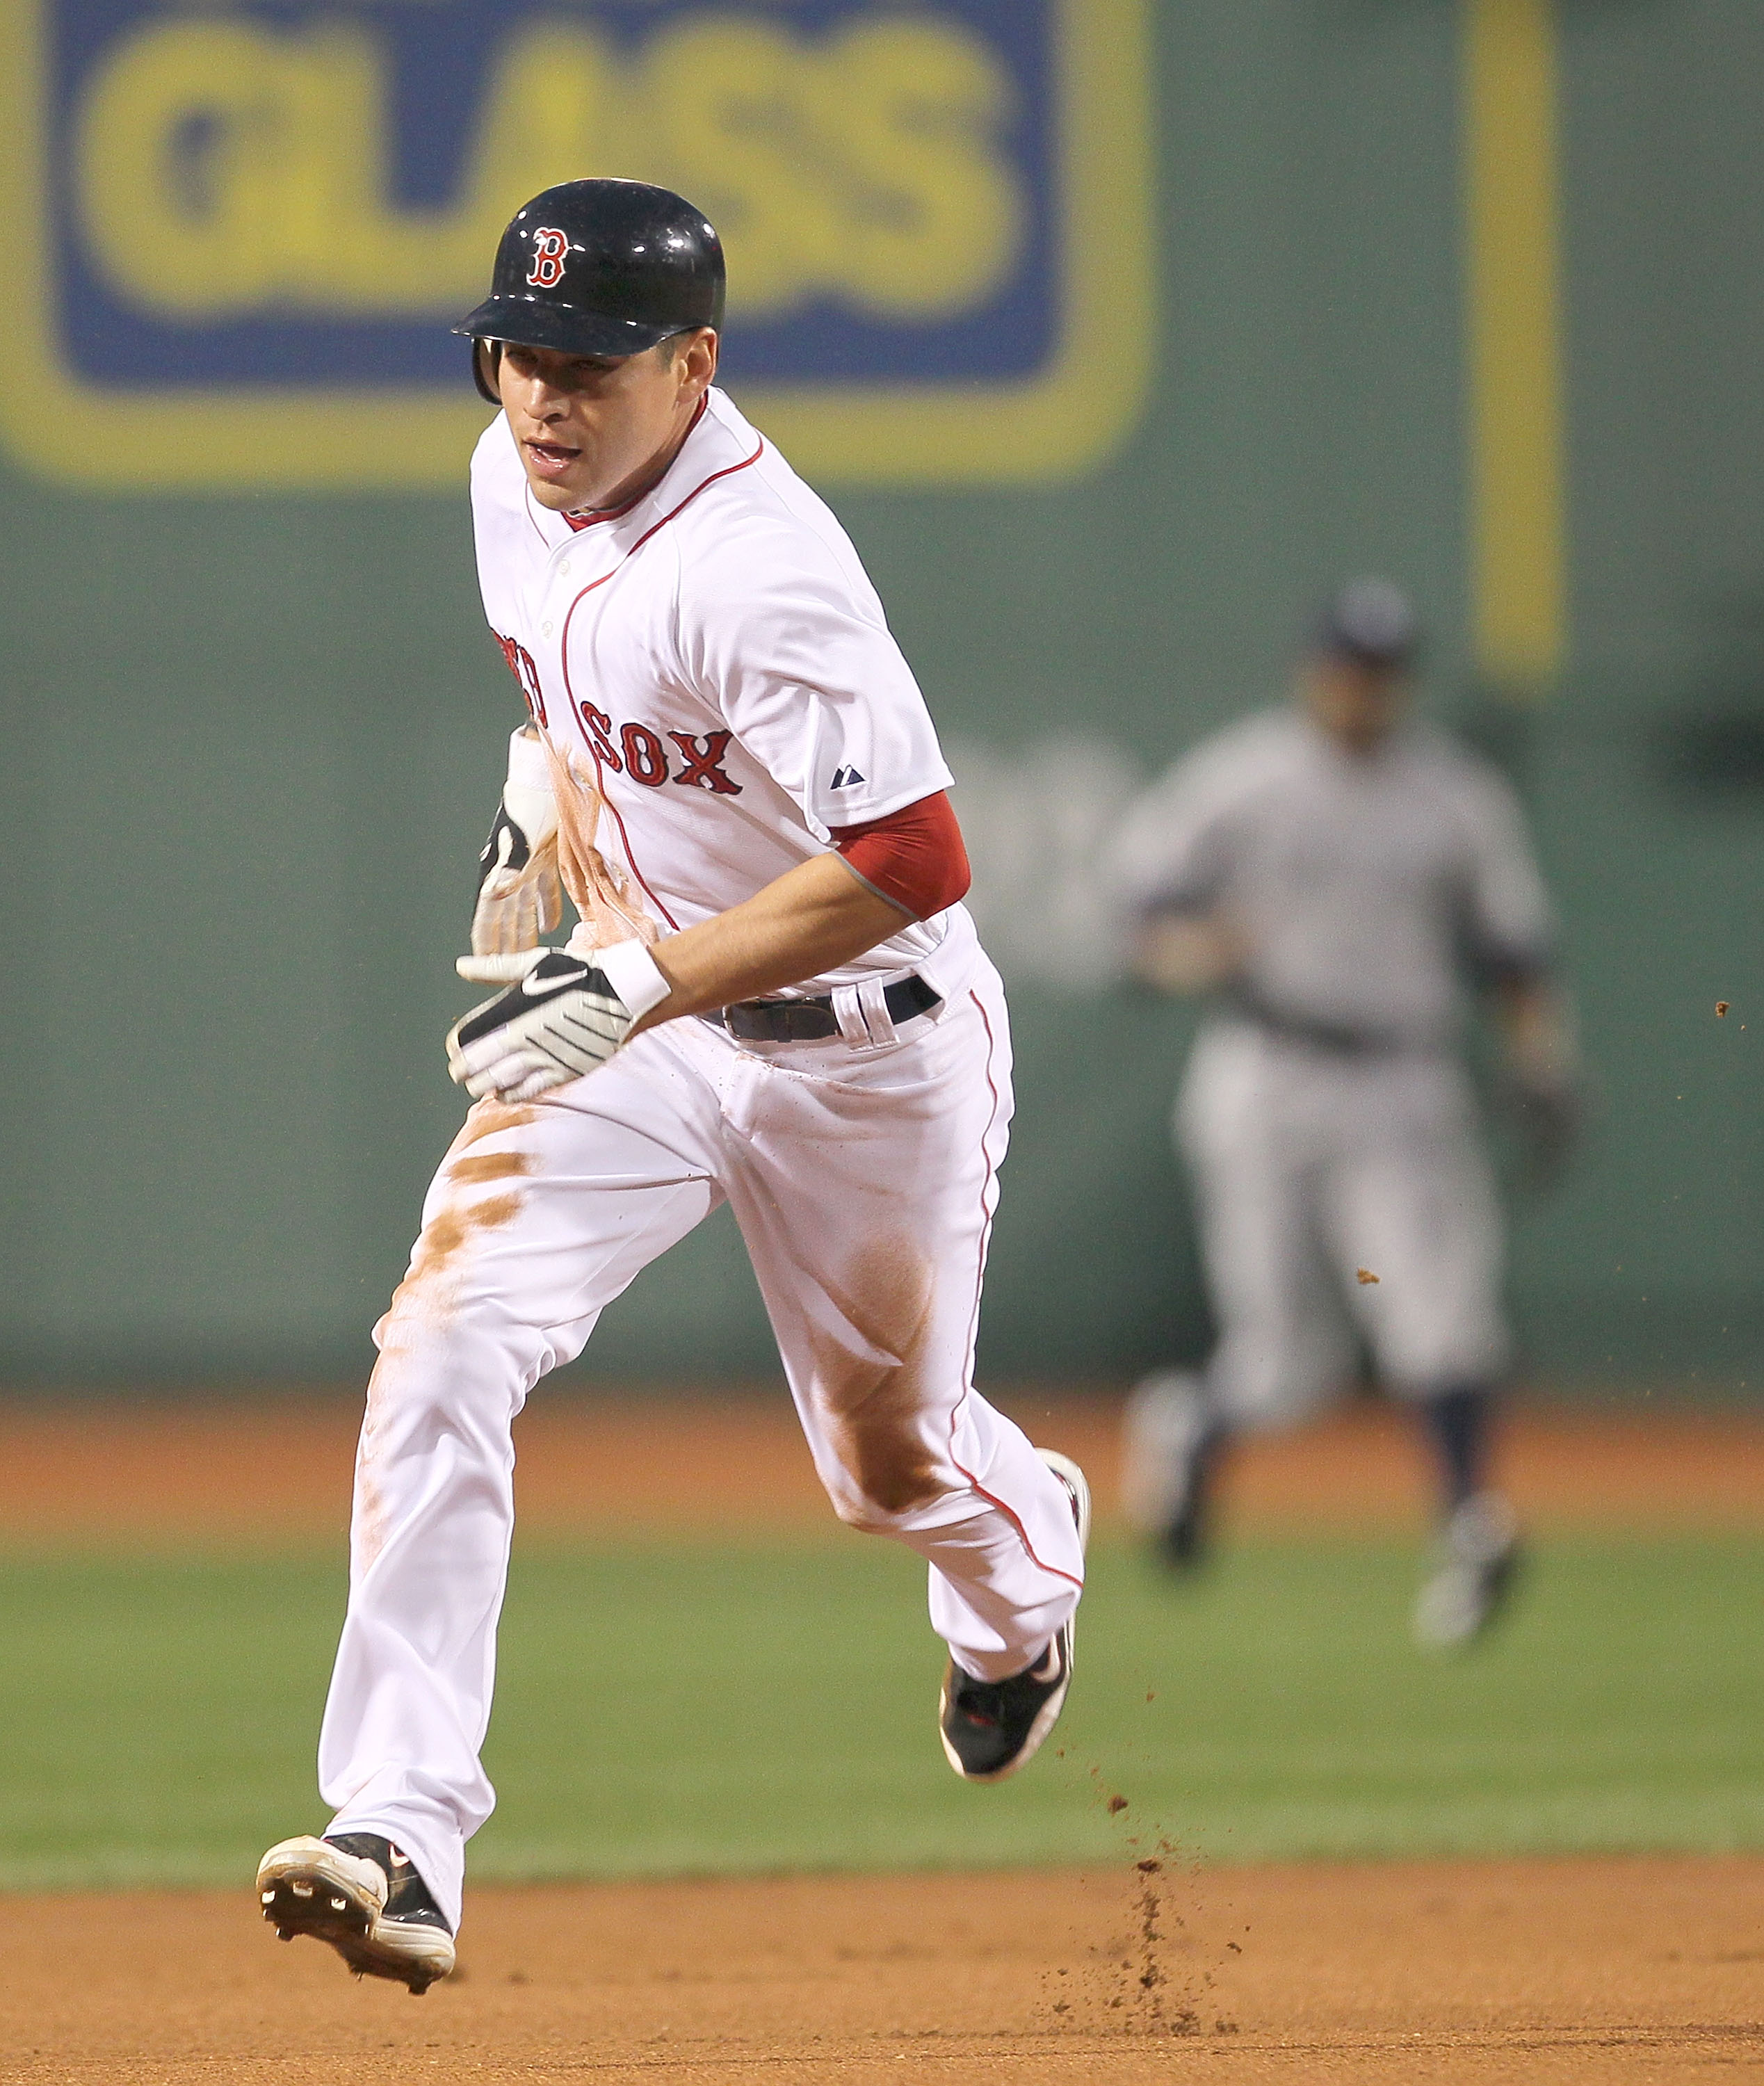 BOSTON - APRIL 06:  Jacoby Ellsbury #2 of the Boston Red Sox runs on an errant throw against the New York Yankees at Fenway Park on April 6, 2010 in Boston, Massachusetts. (Photo by Jim Rogash/Getty Images)